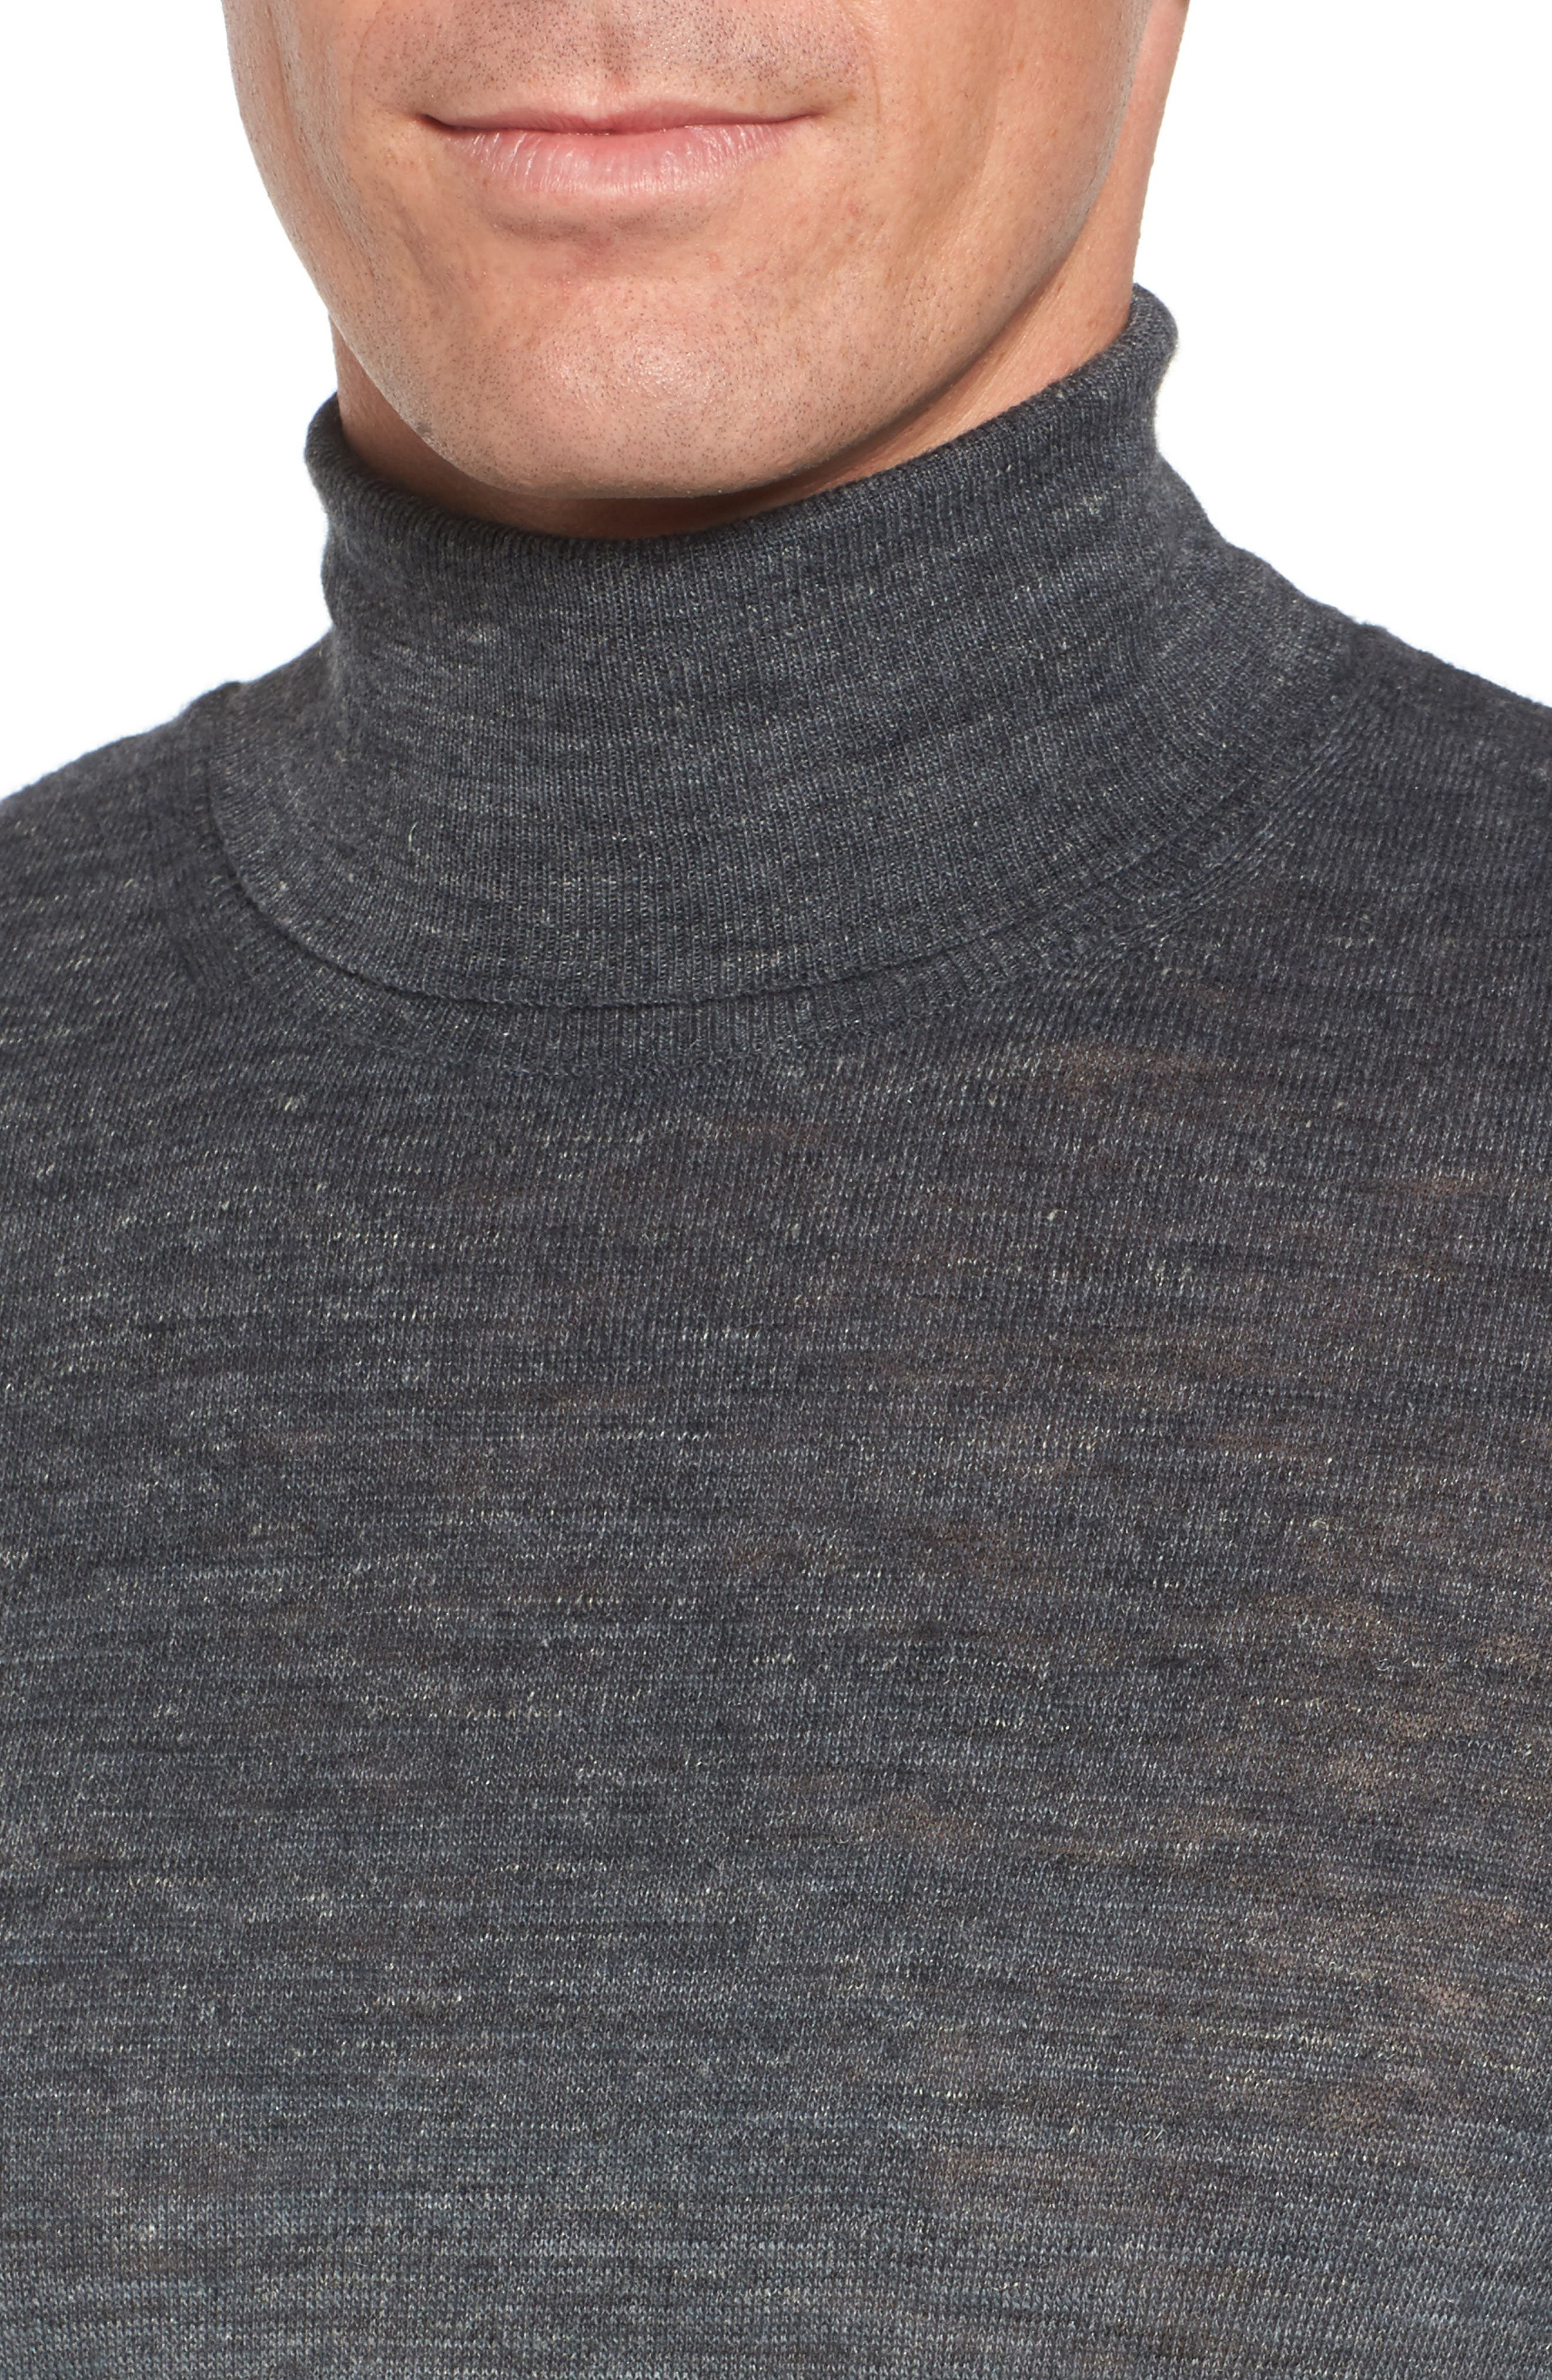 Regular Fit Dip Dye Turtleneck,                             Alternate thumbnail 4, color,                             020